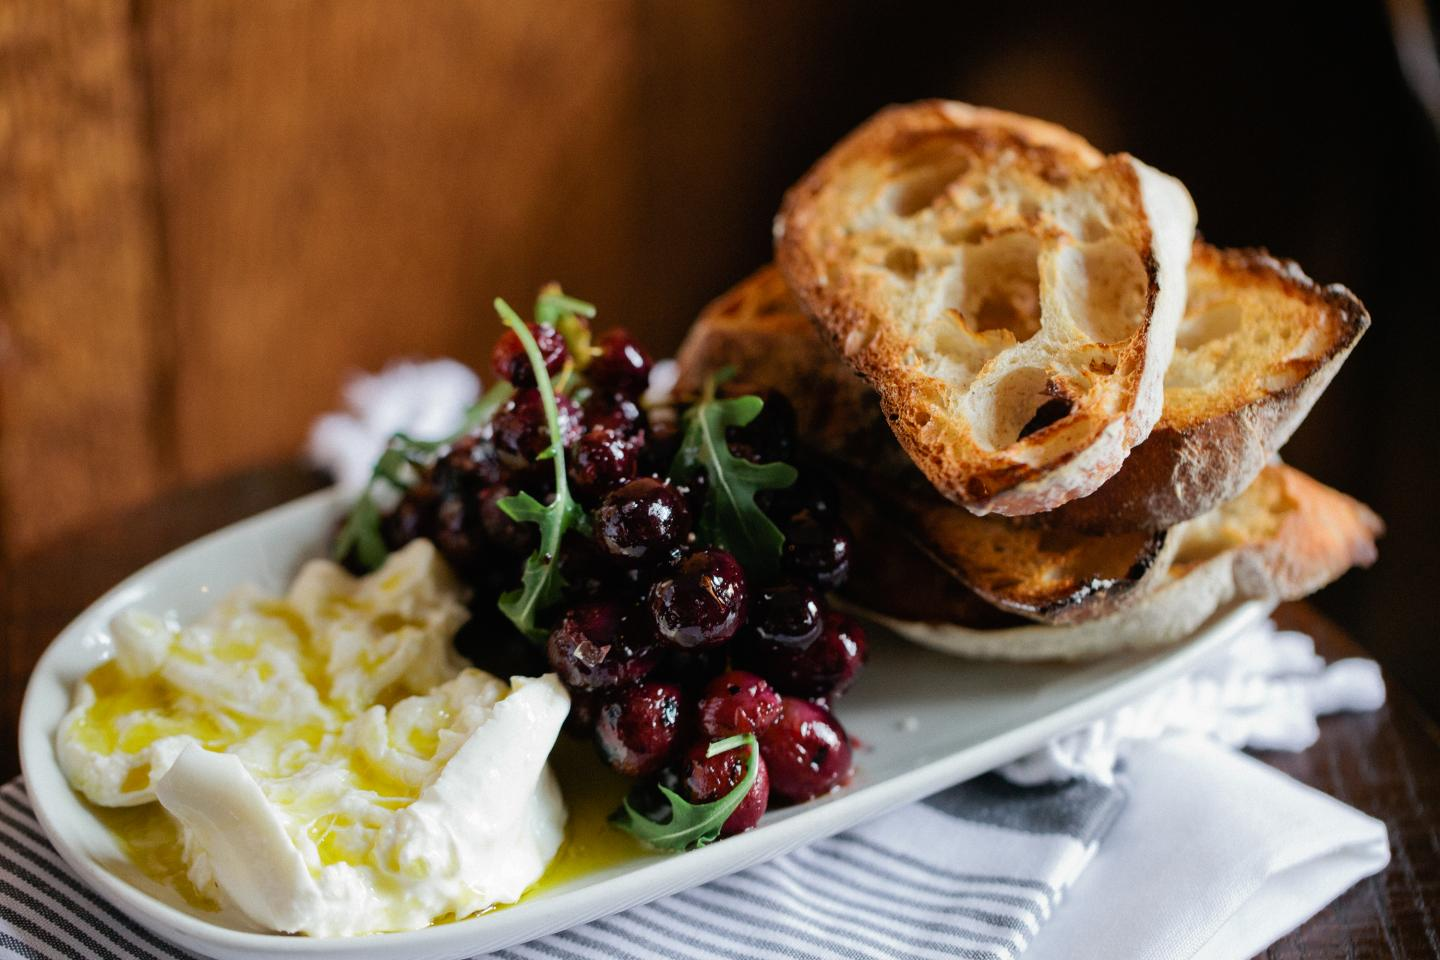 burrata and grilled grapes with bread from stella barra